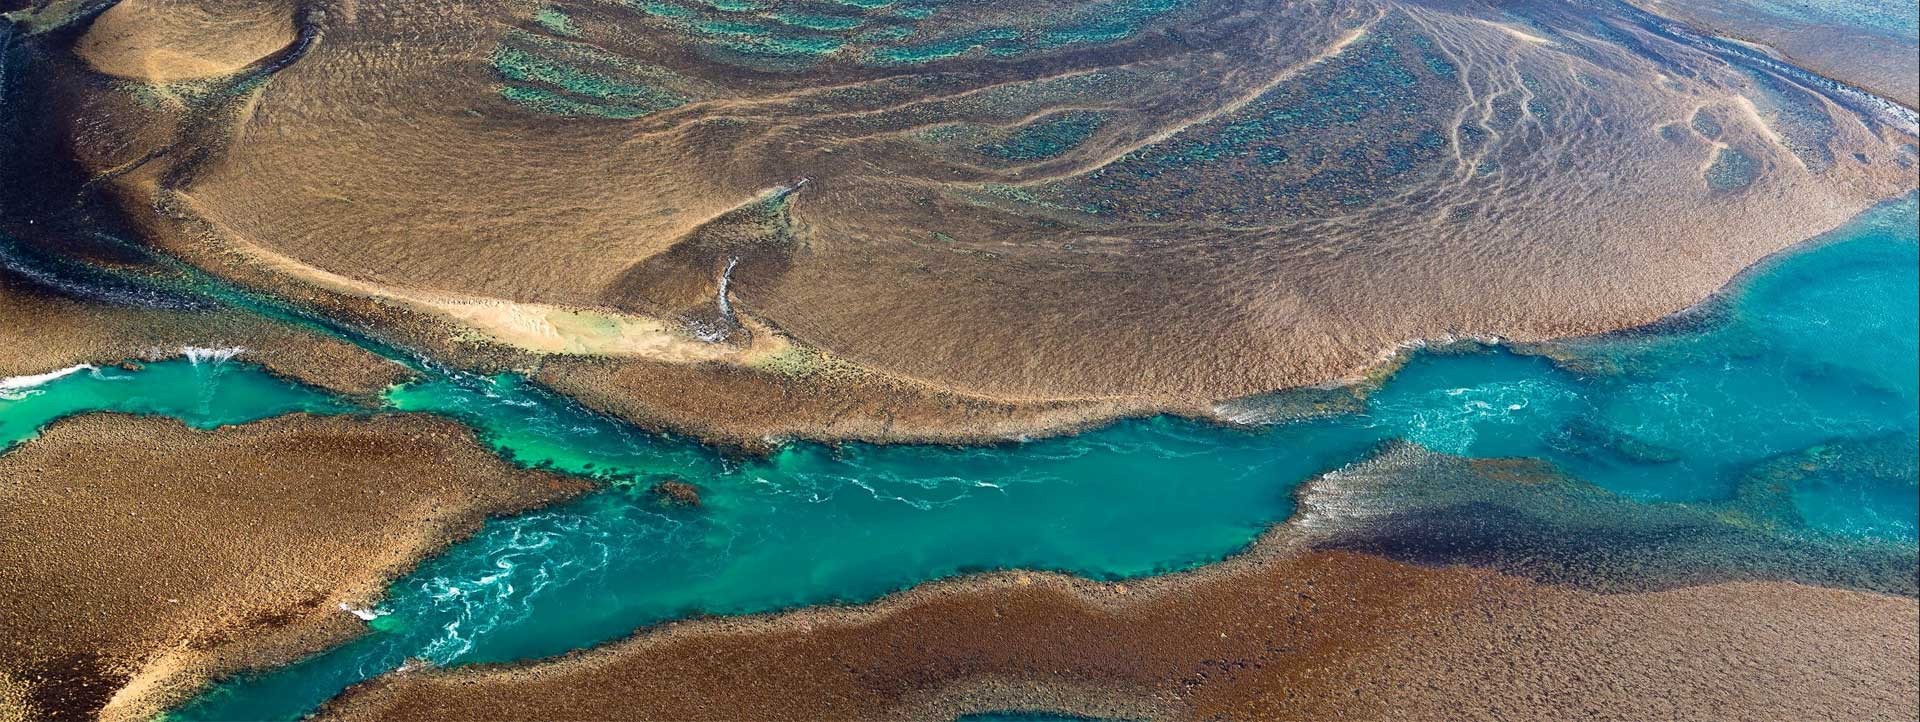 MONTGOMERY-REEF-TOURS-water-aerial